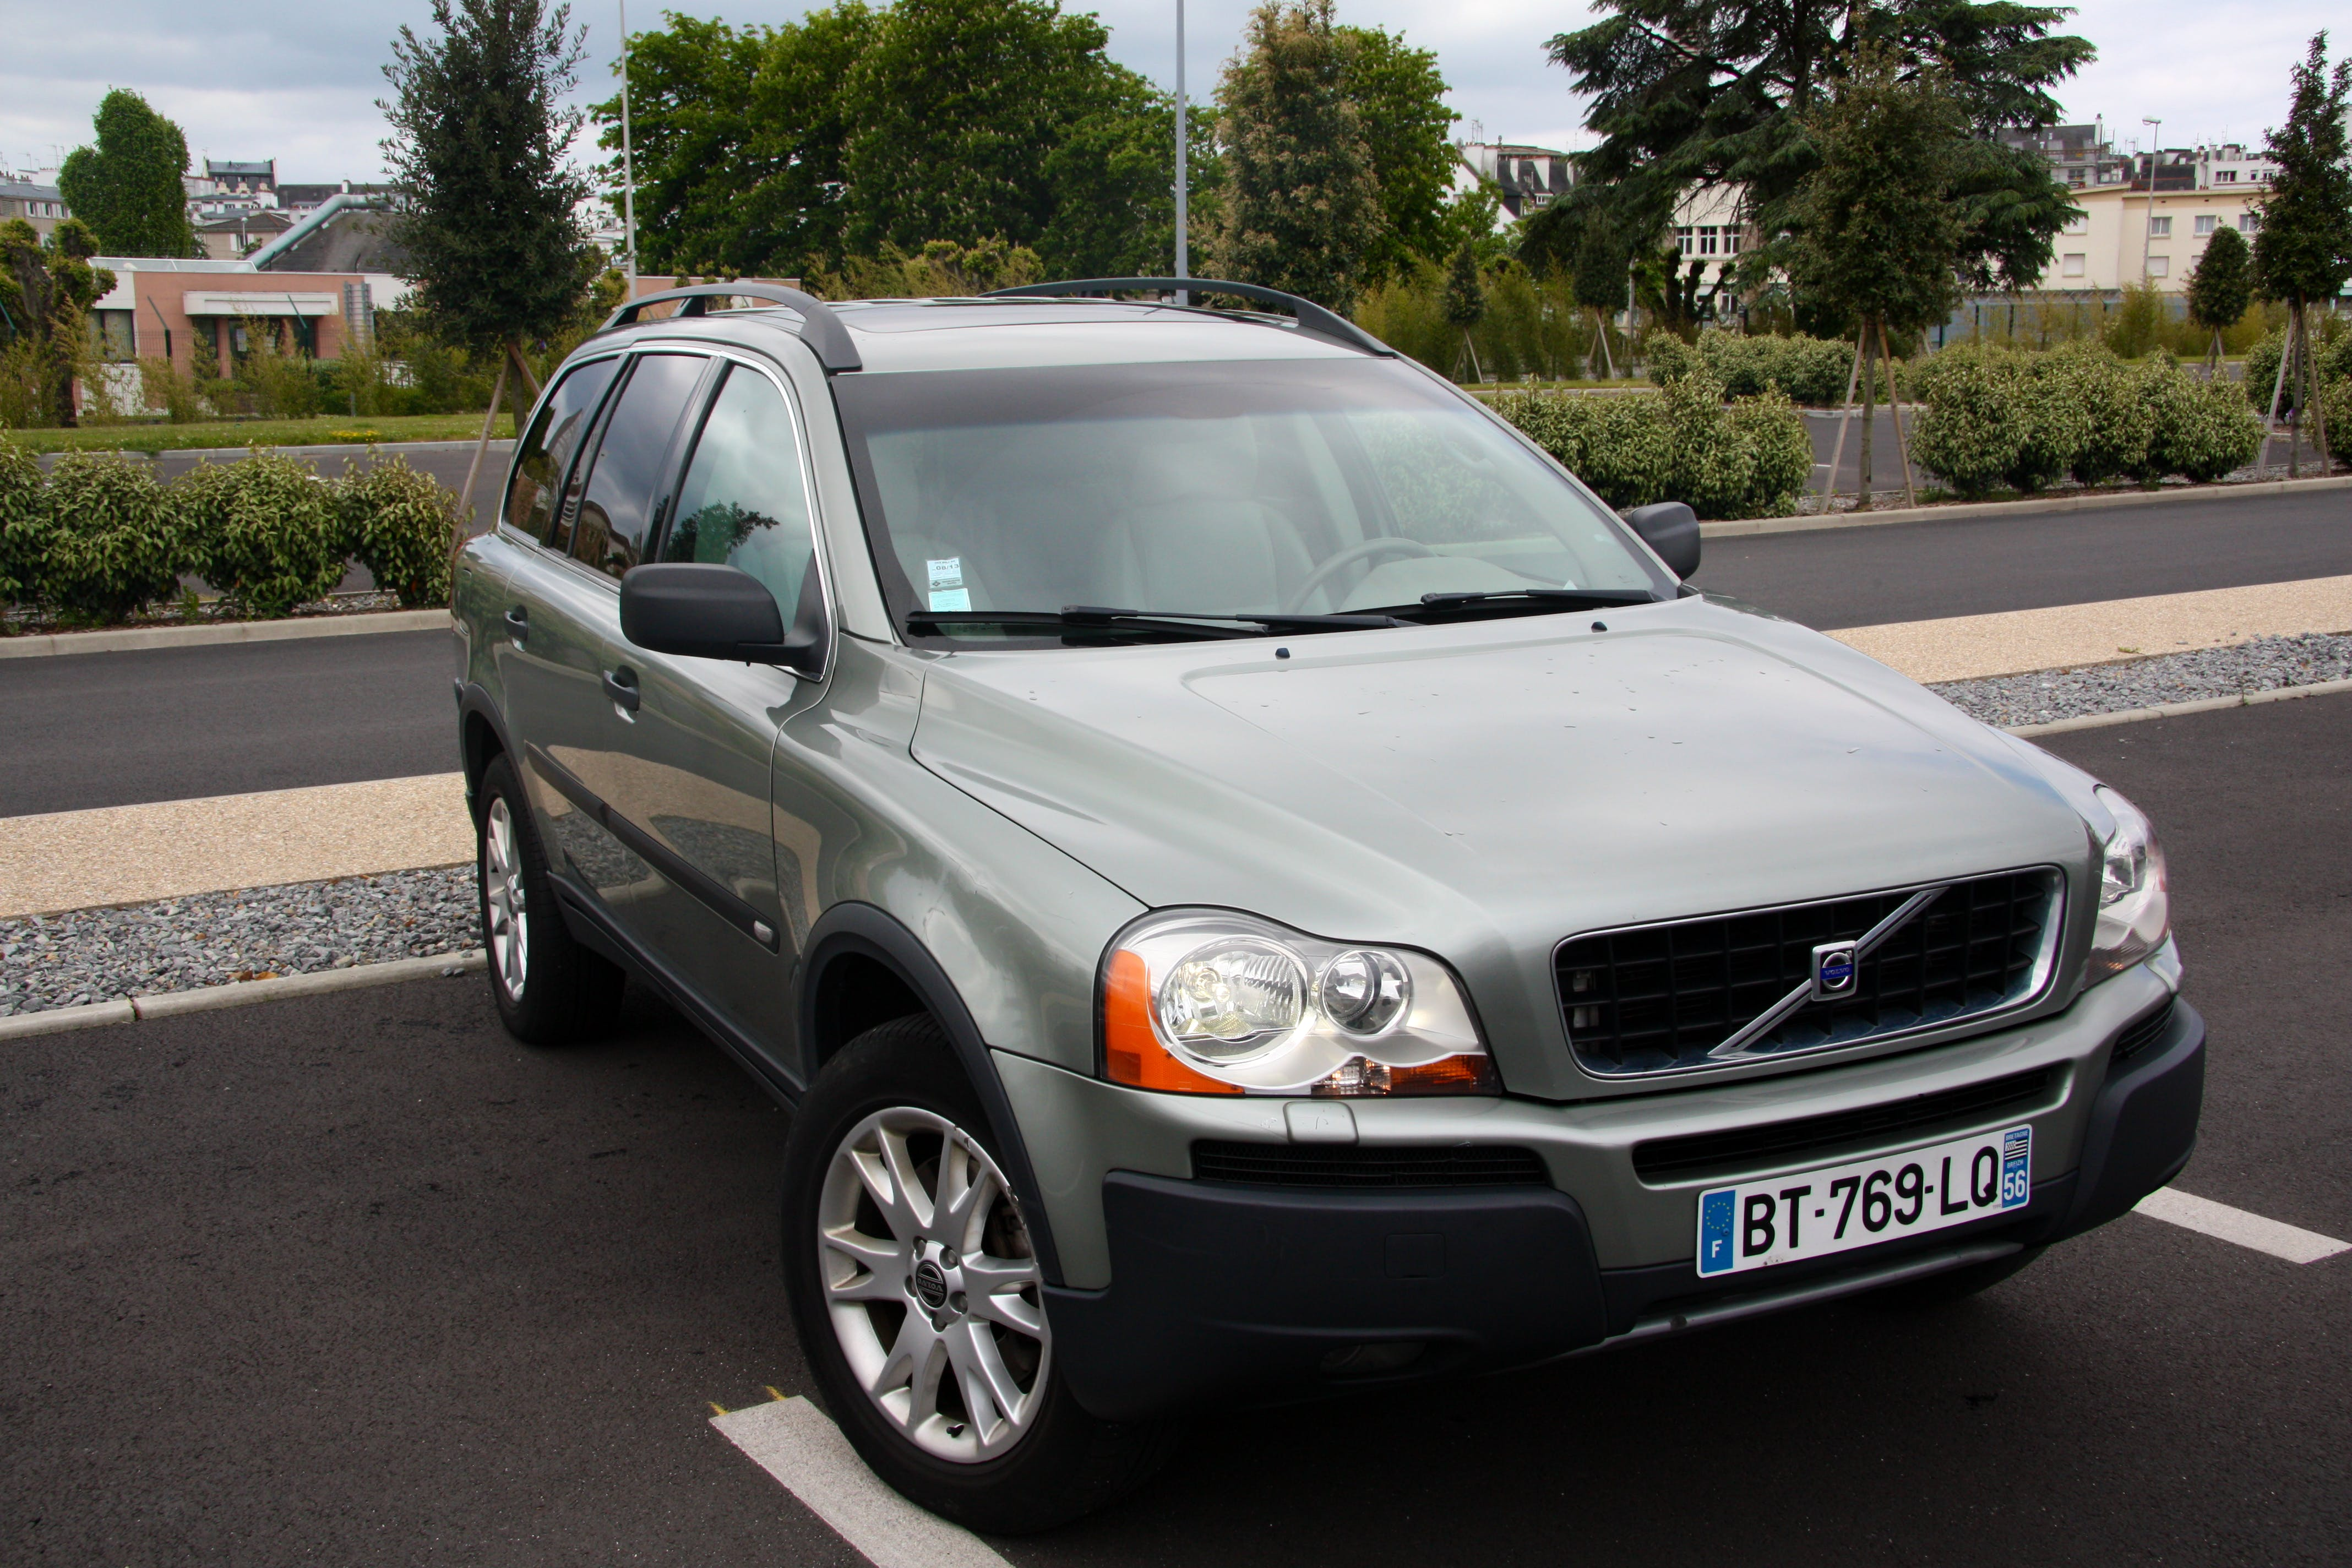 volvo XC90 7 places xenium, 2005, Diesel, automatique, 7 places